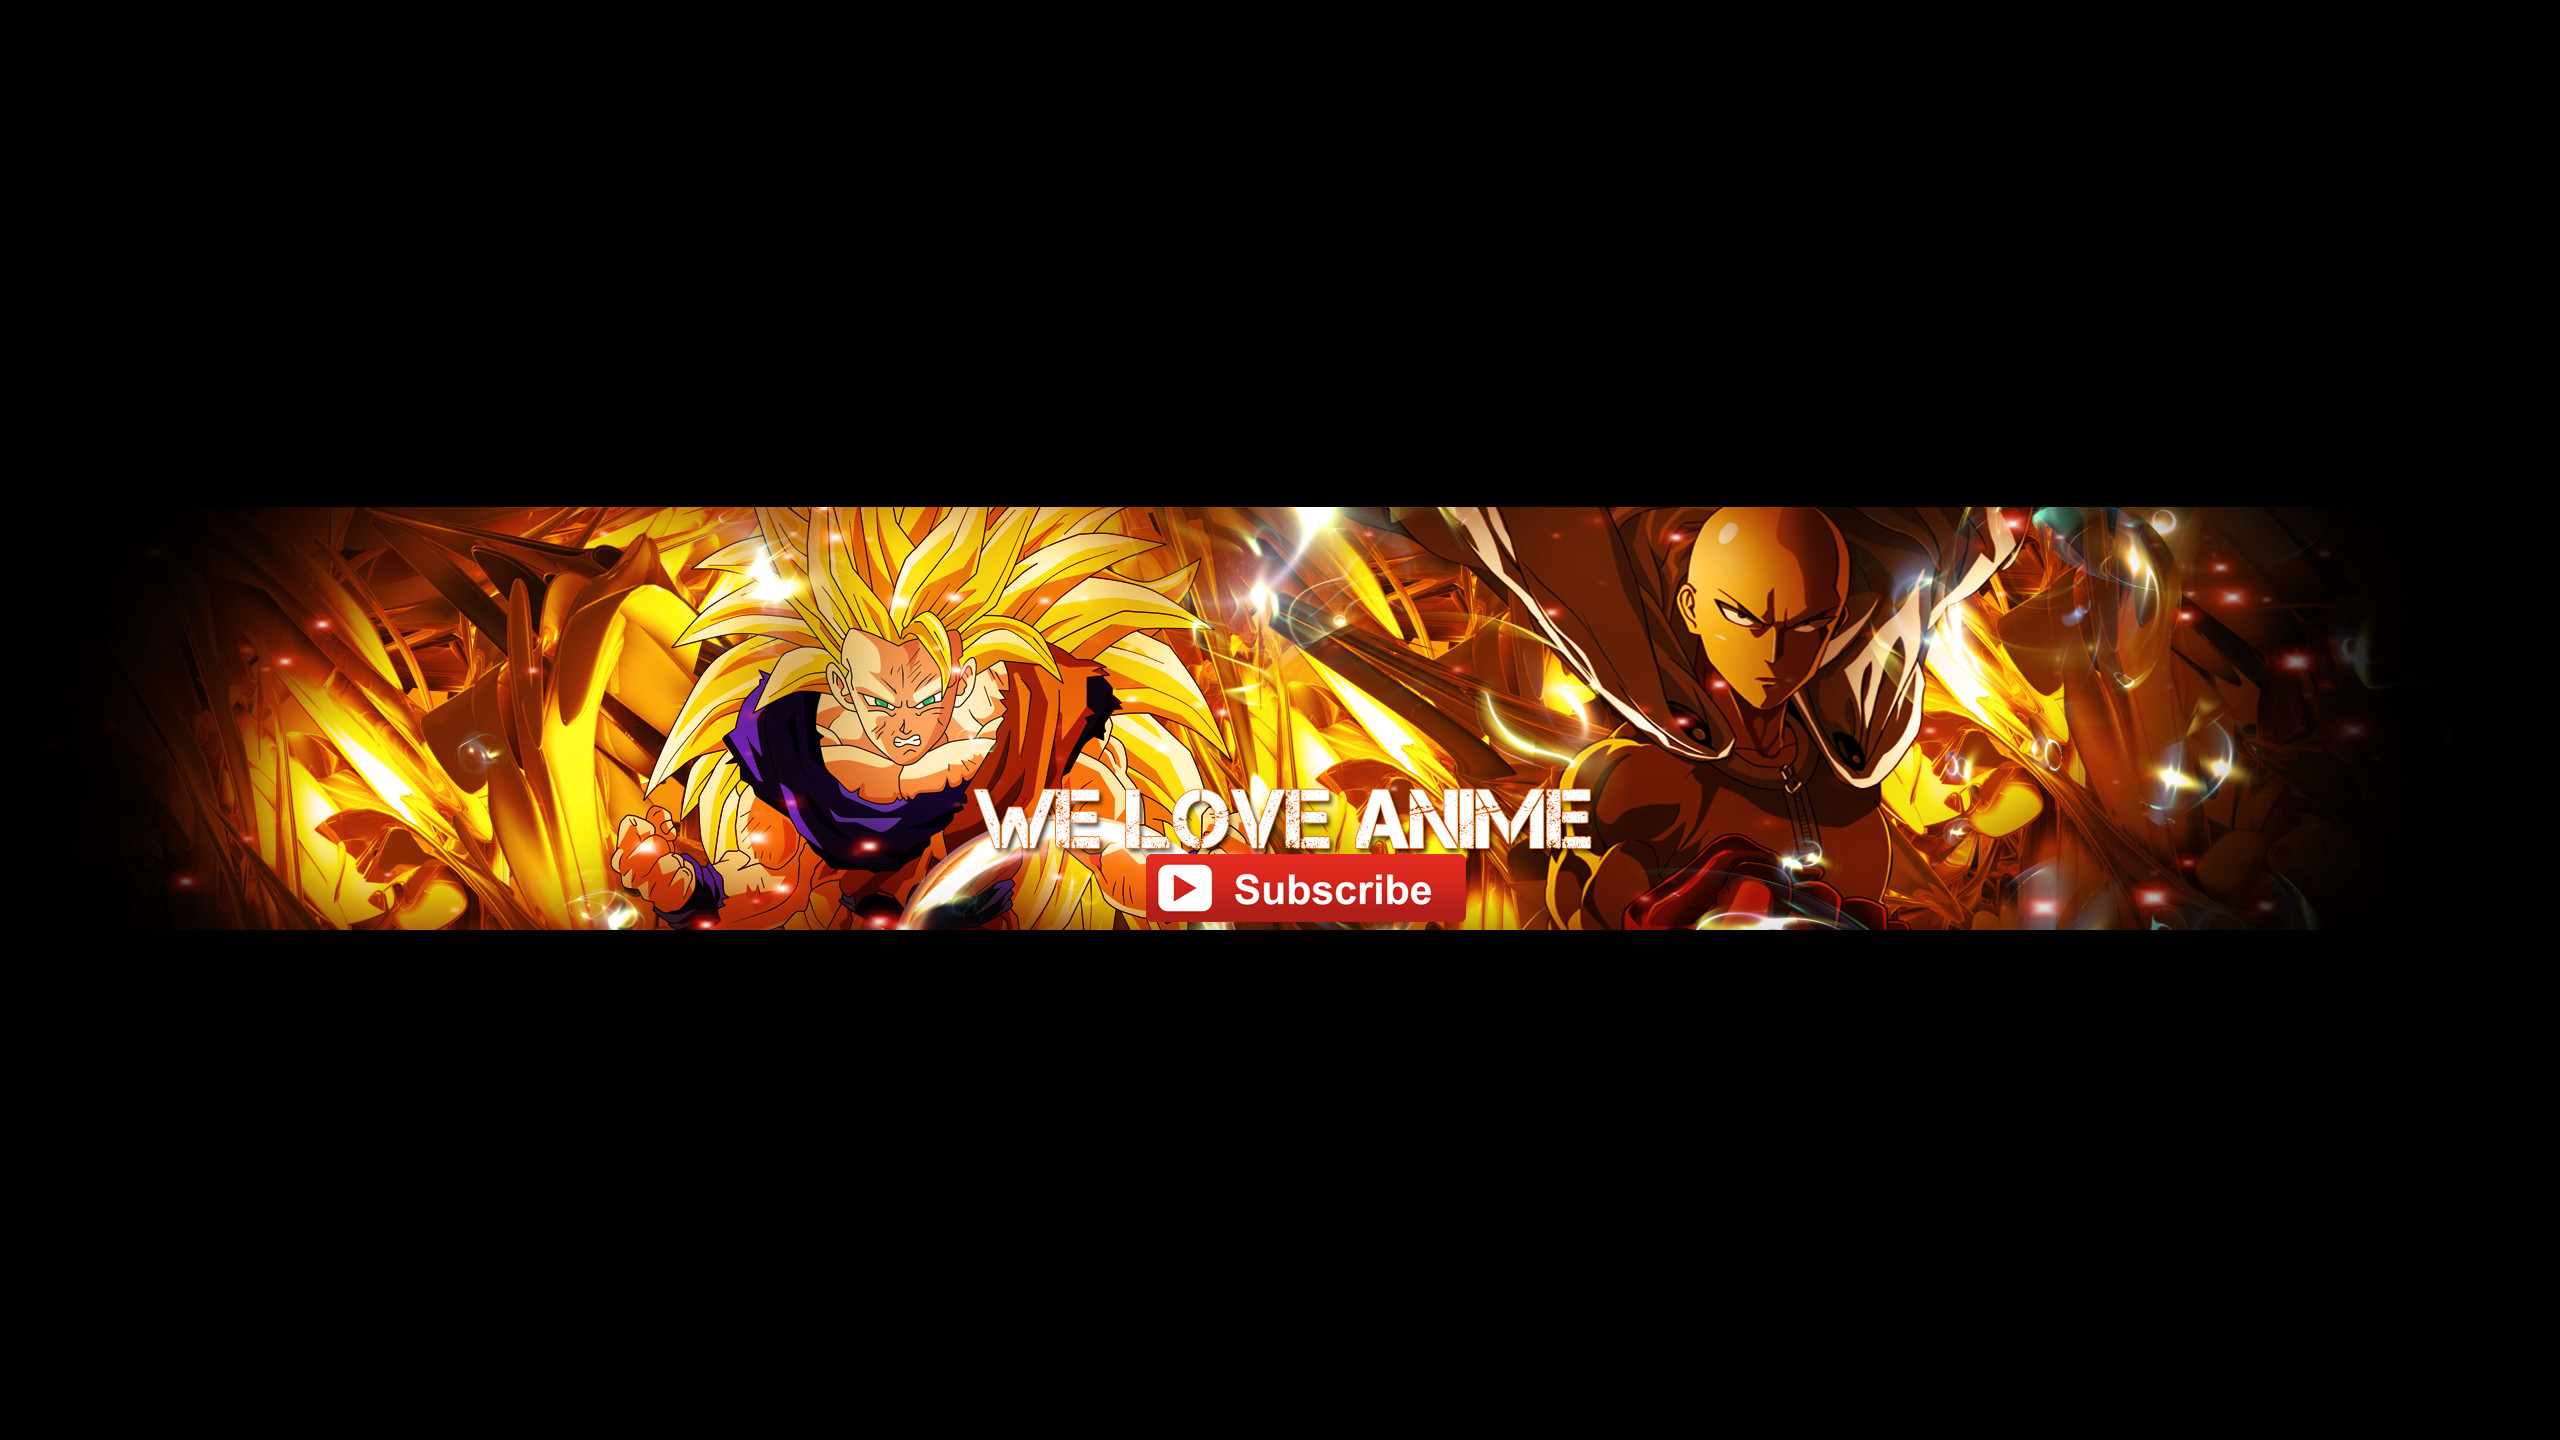 Youtube banner wallpaper 90 images - Anime background for youtube ...